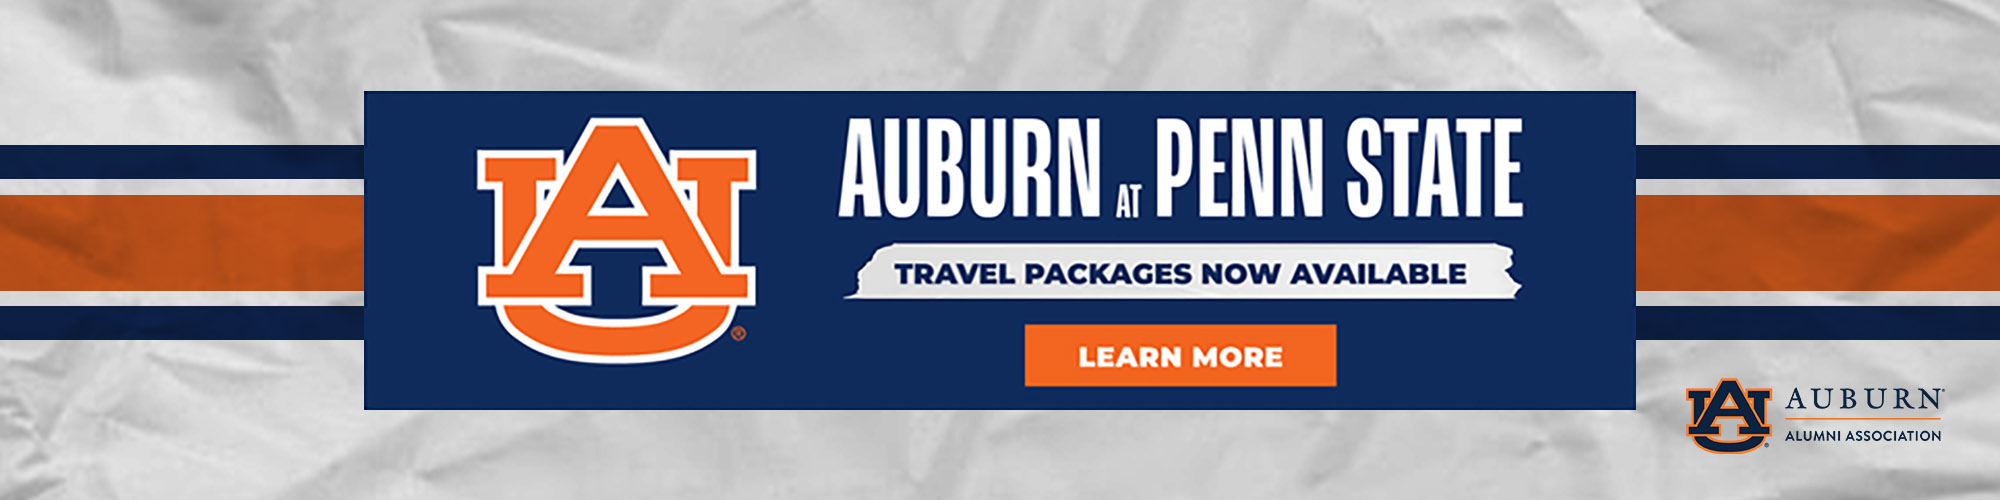 Auburn at Penn State Anthony Travel tickets available